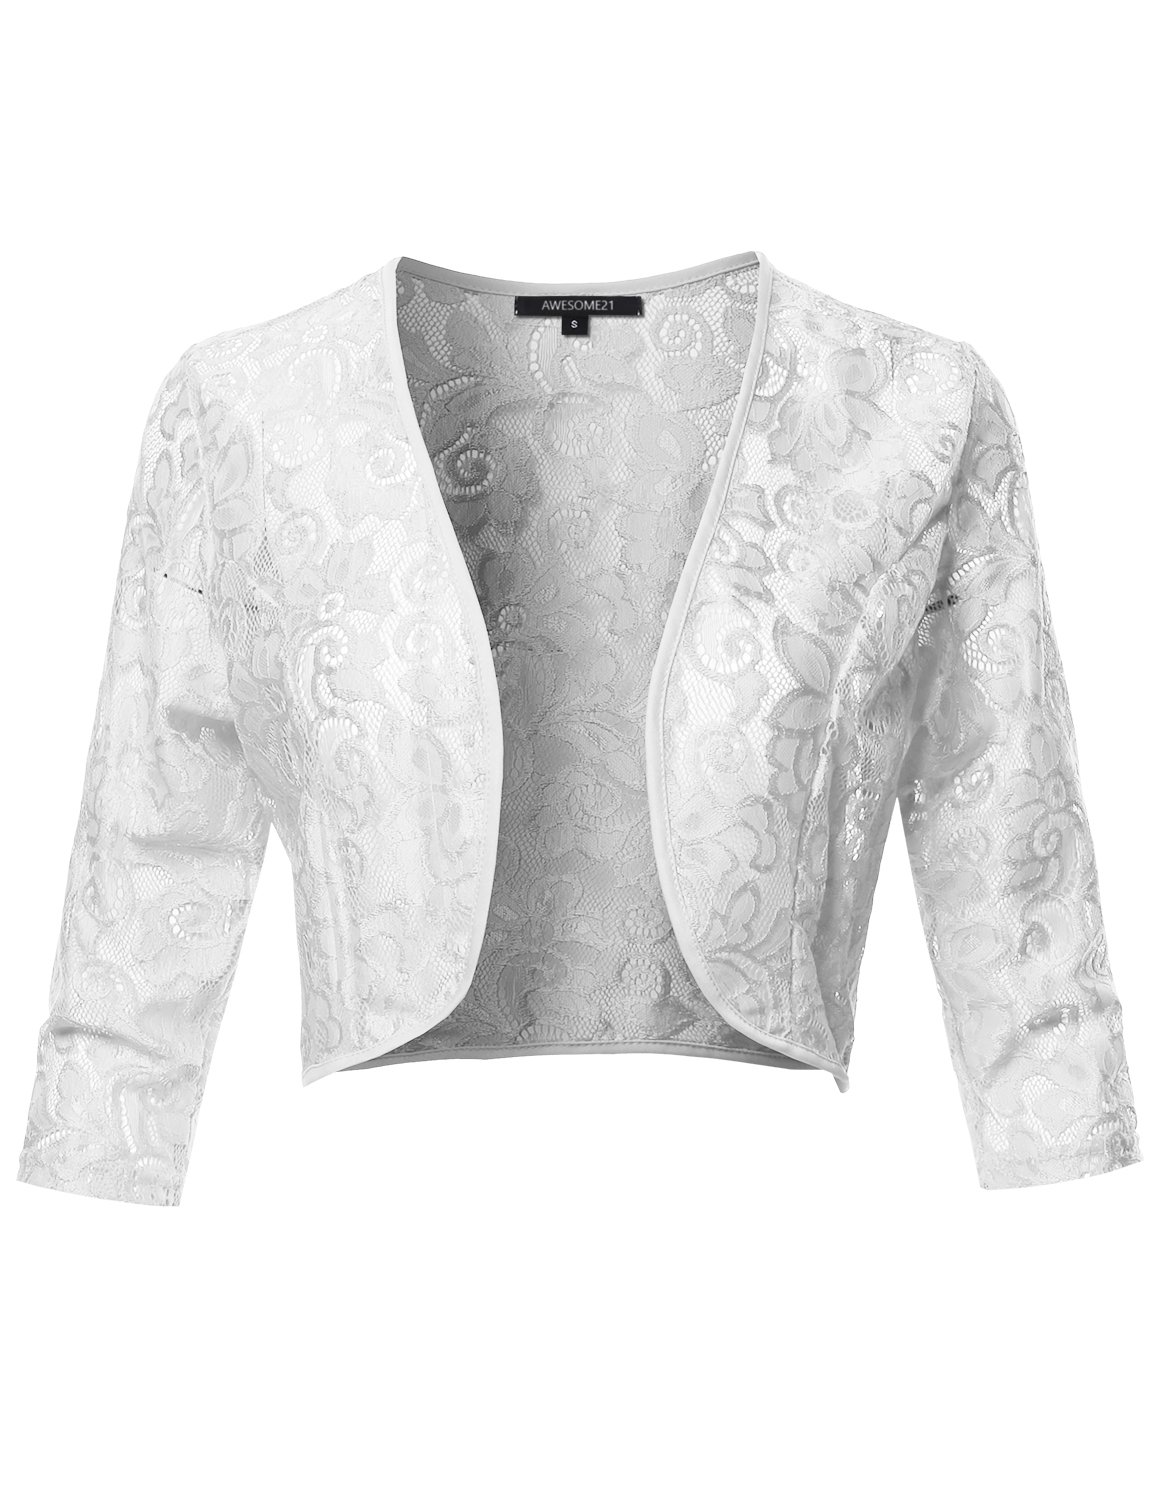 Awesome21 3/4 Sleeve Floral Lace Shrug Bolero Cardigan Top - Made in USA White M